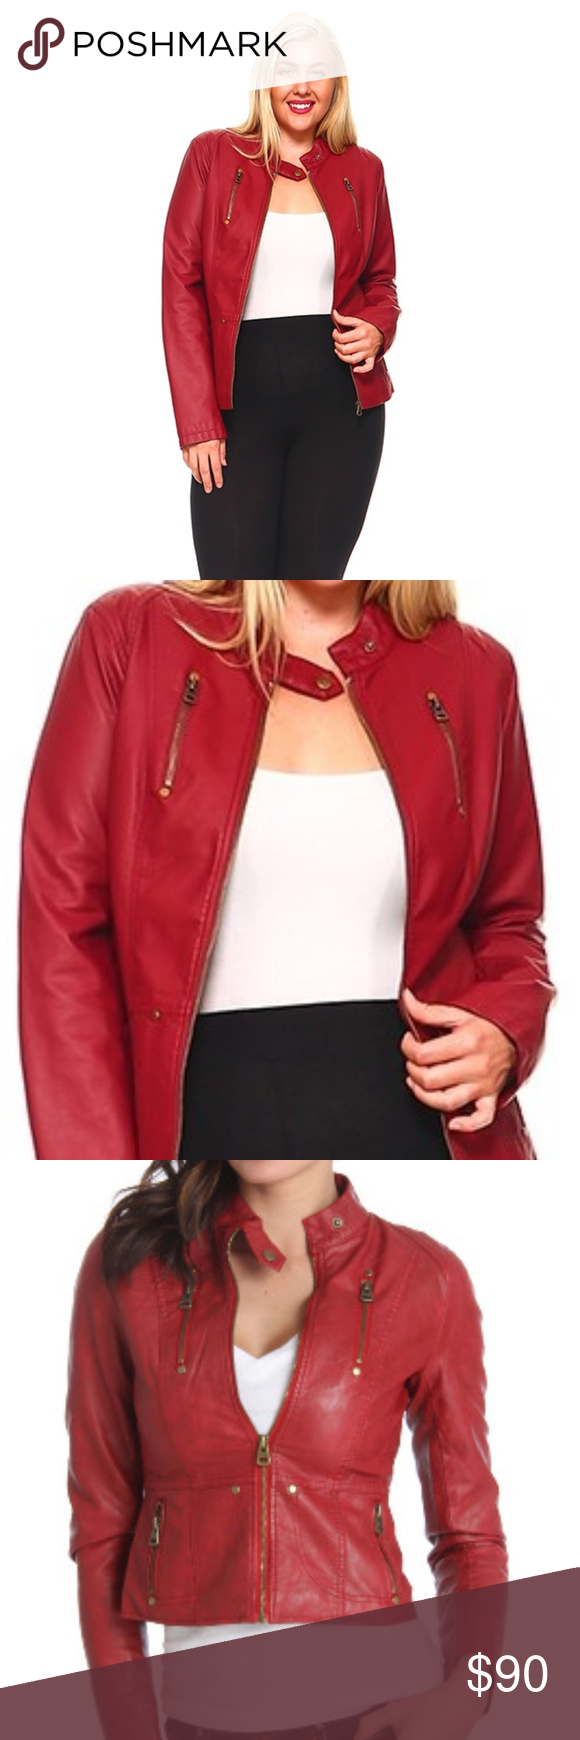 NWT Plus Size Vegan Leather Moto Jacket Size 1X Vegan